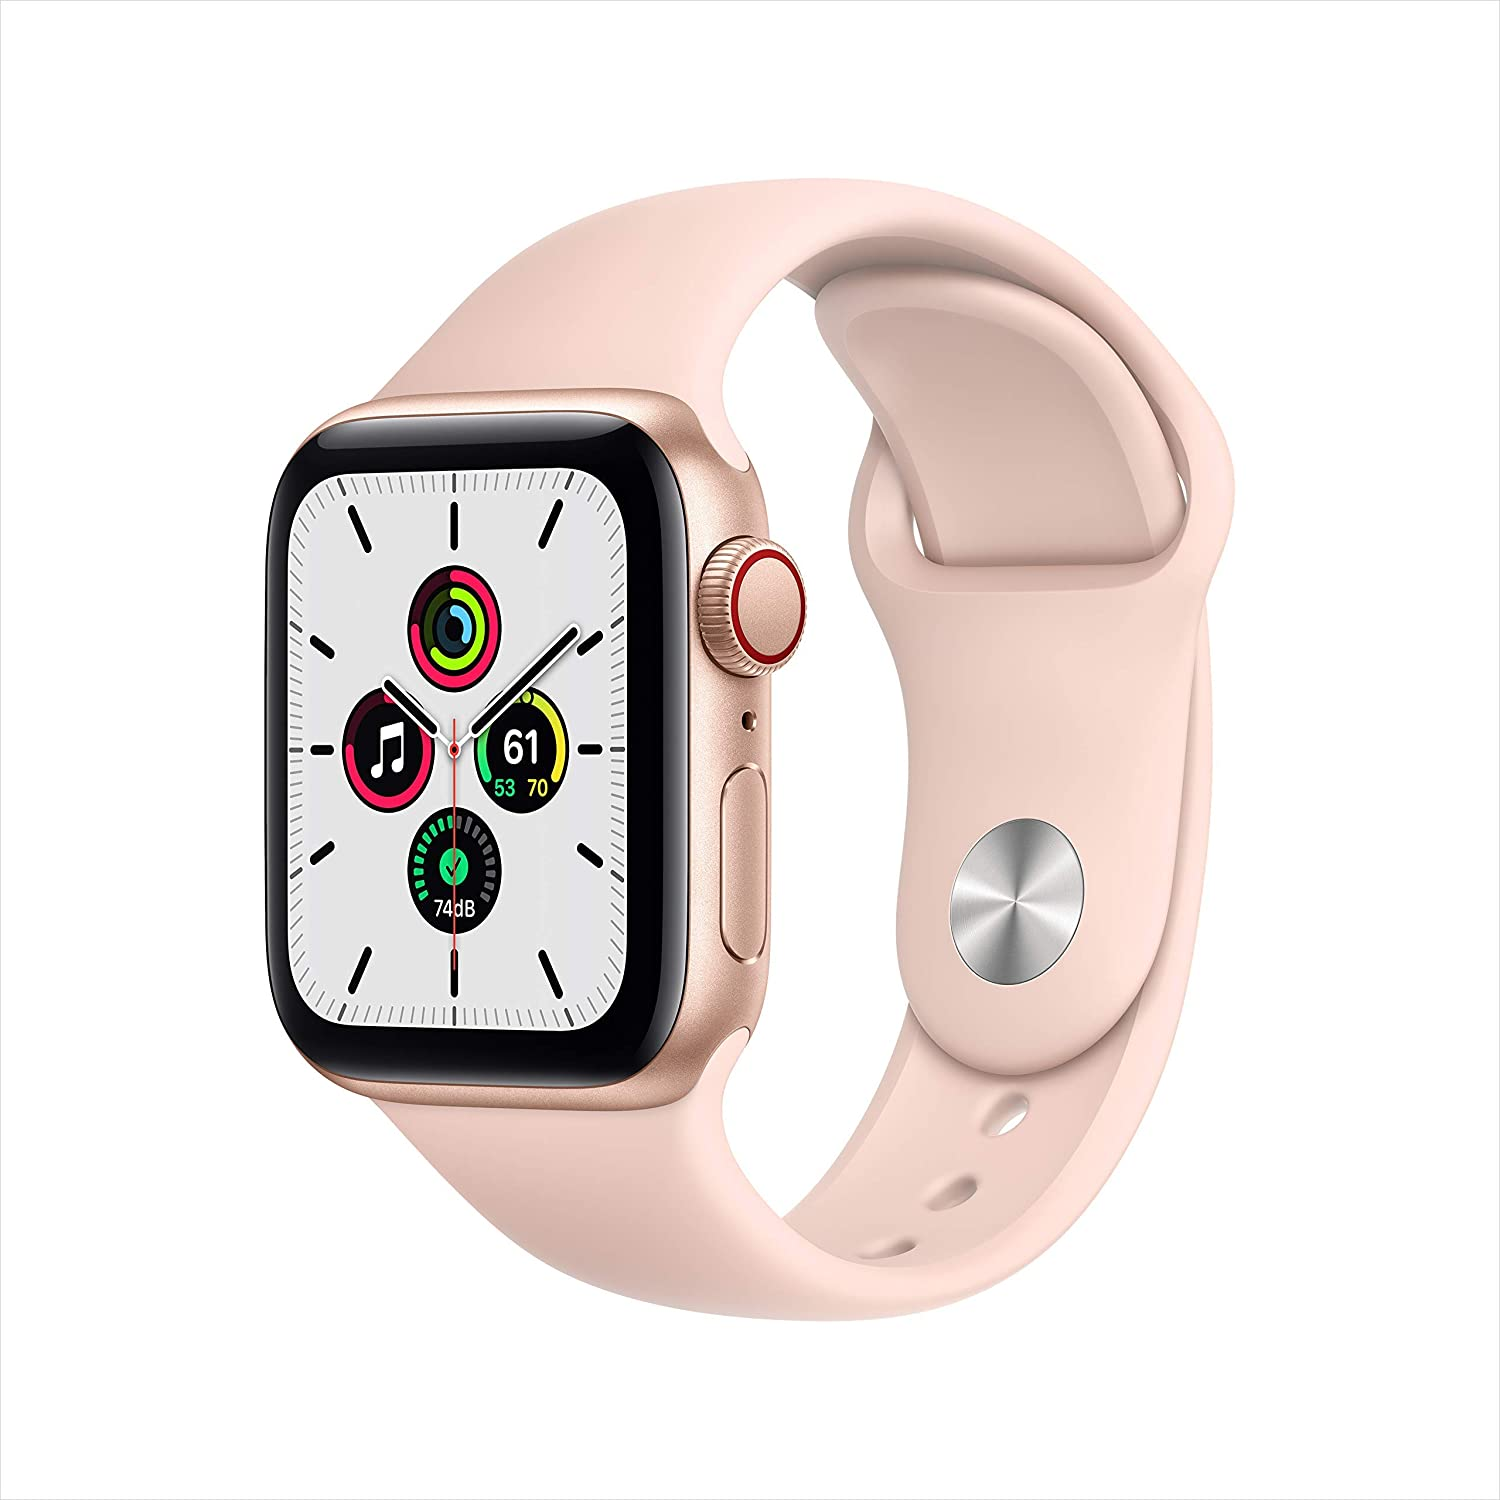 New Apple Watch SE (GPS + Cellular, 40mm) - Gold Aluminum Case with Pink Sand Sport Band (Renewed)